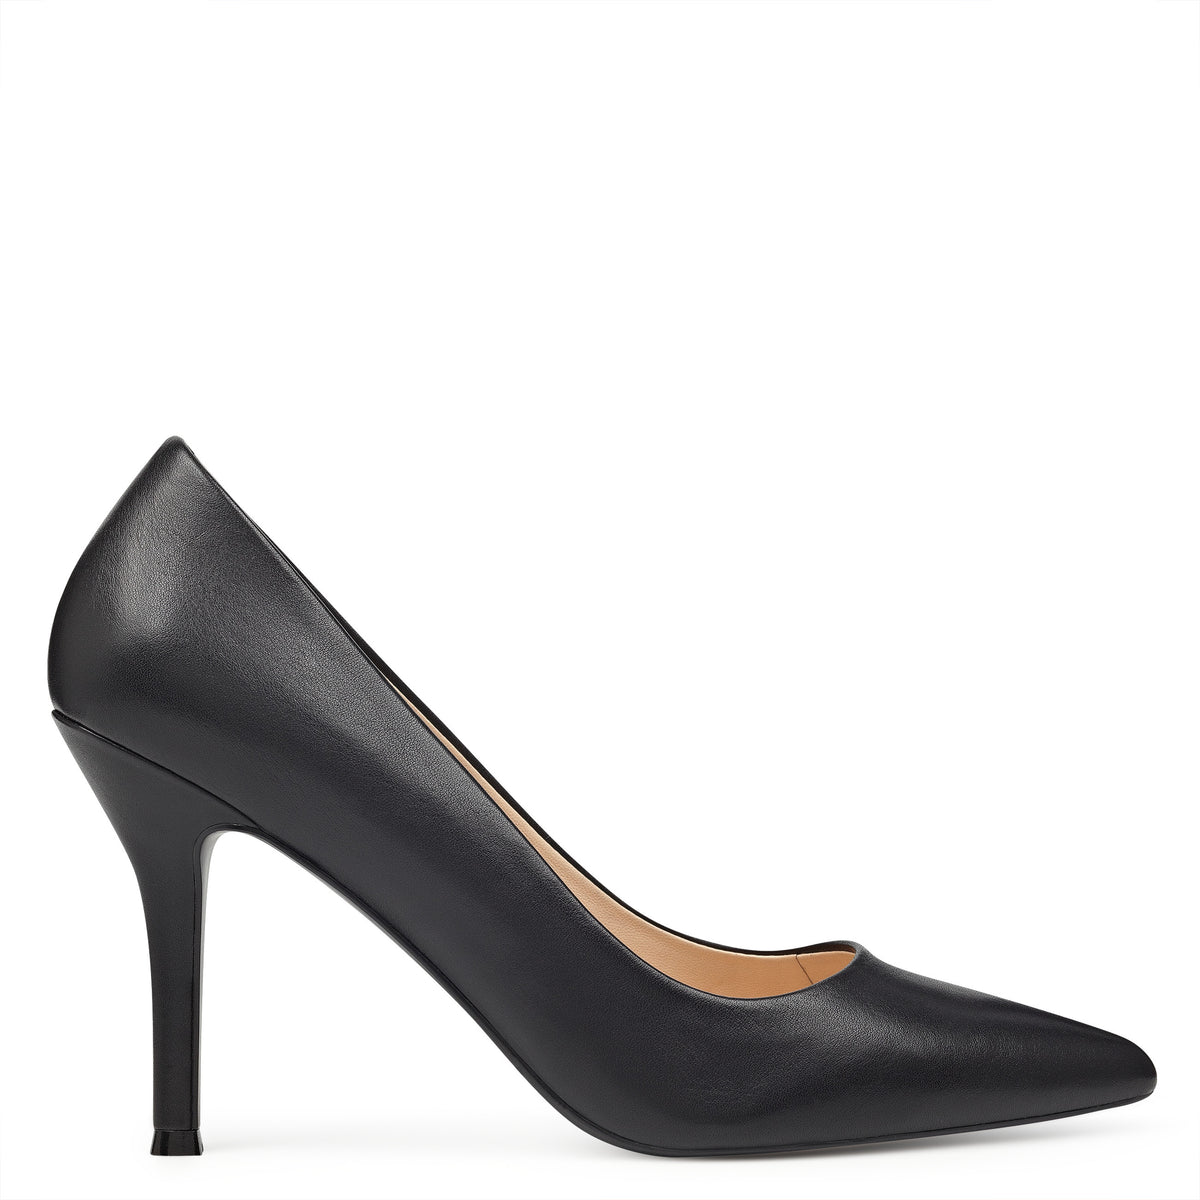 Fifth Pointy Toe Pumps